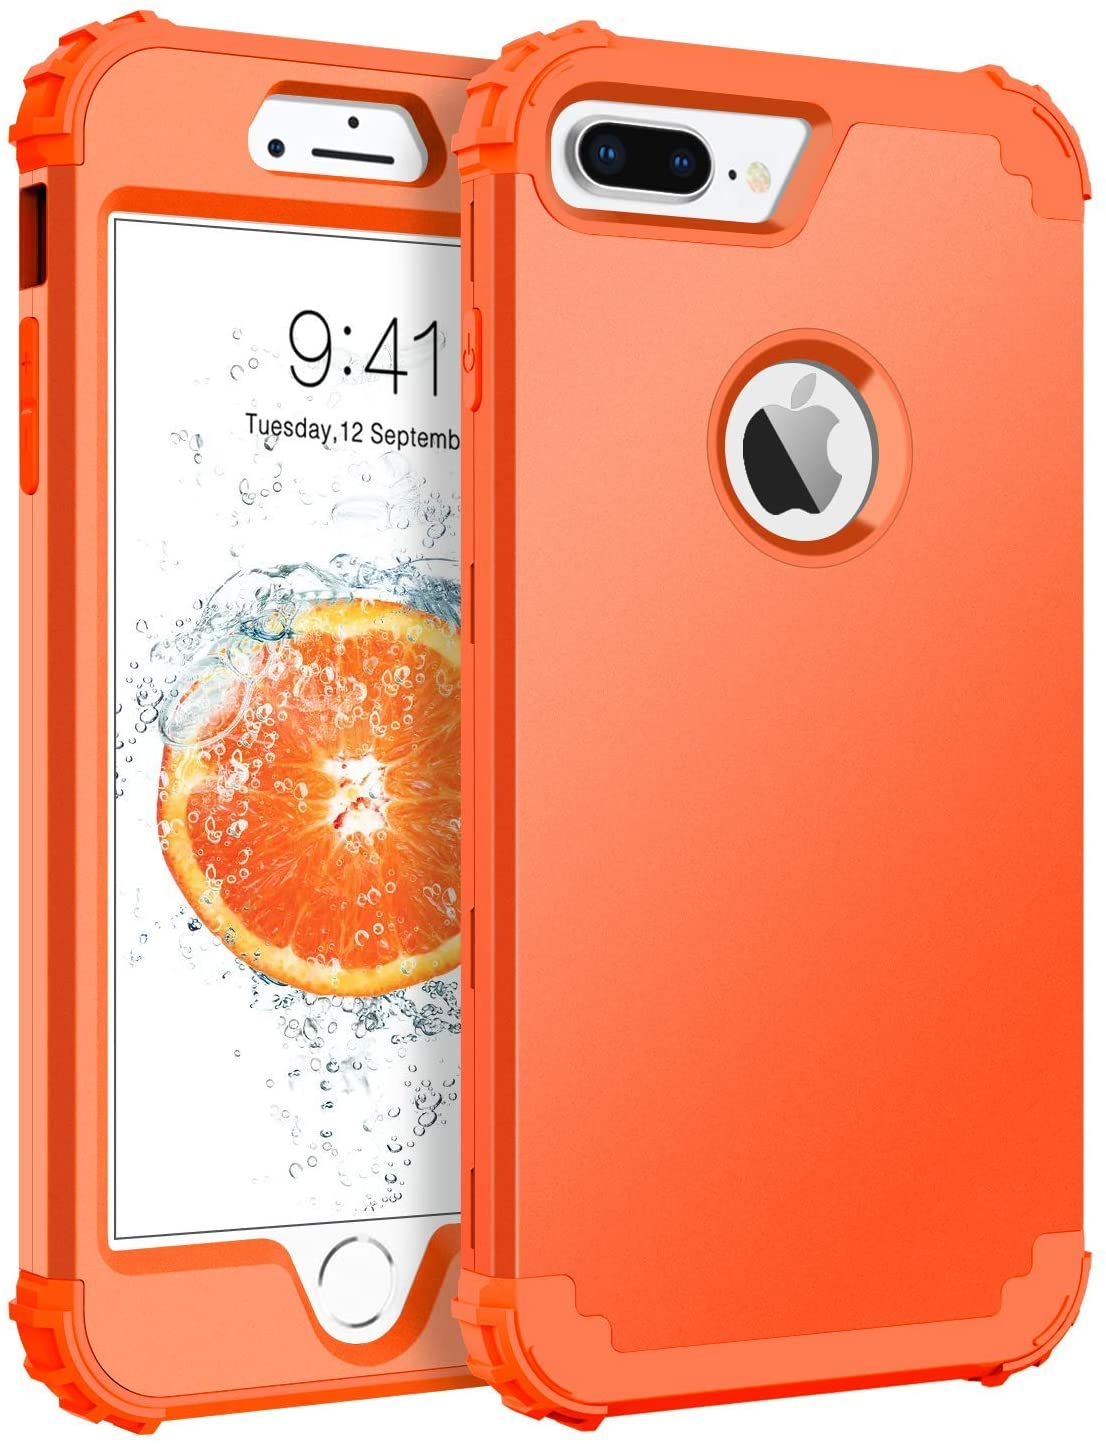 BENTOBEN Case for iPhone 8 Plus, iPhone 7 Plus Case, 3 in 1 Hybrid Hard Plastic Soft Rubber Heavy Duty Rugged Bumper Shockproof Full-Body Protective Phone Cover for iPhone 8 Plus/7 Plus, Coral Orange